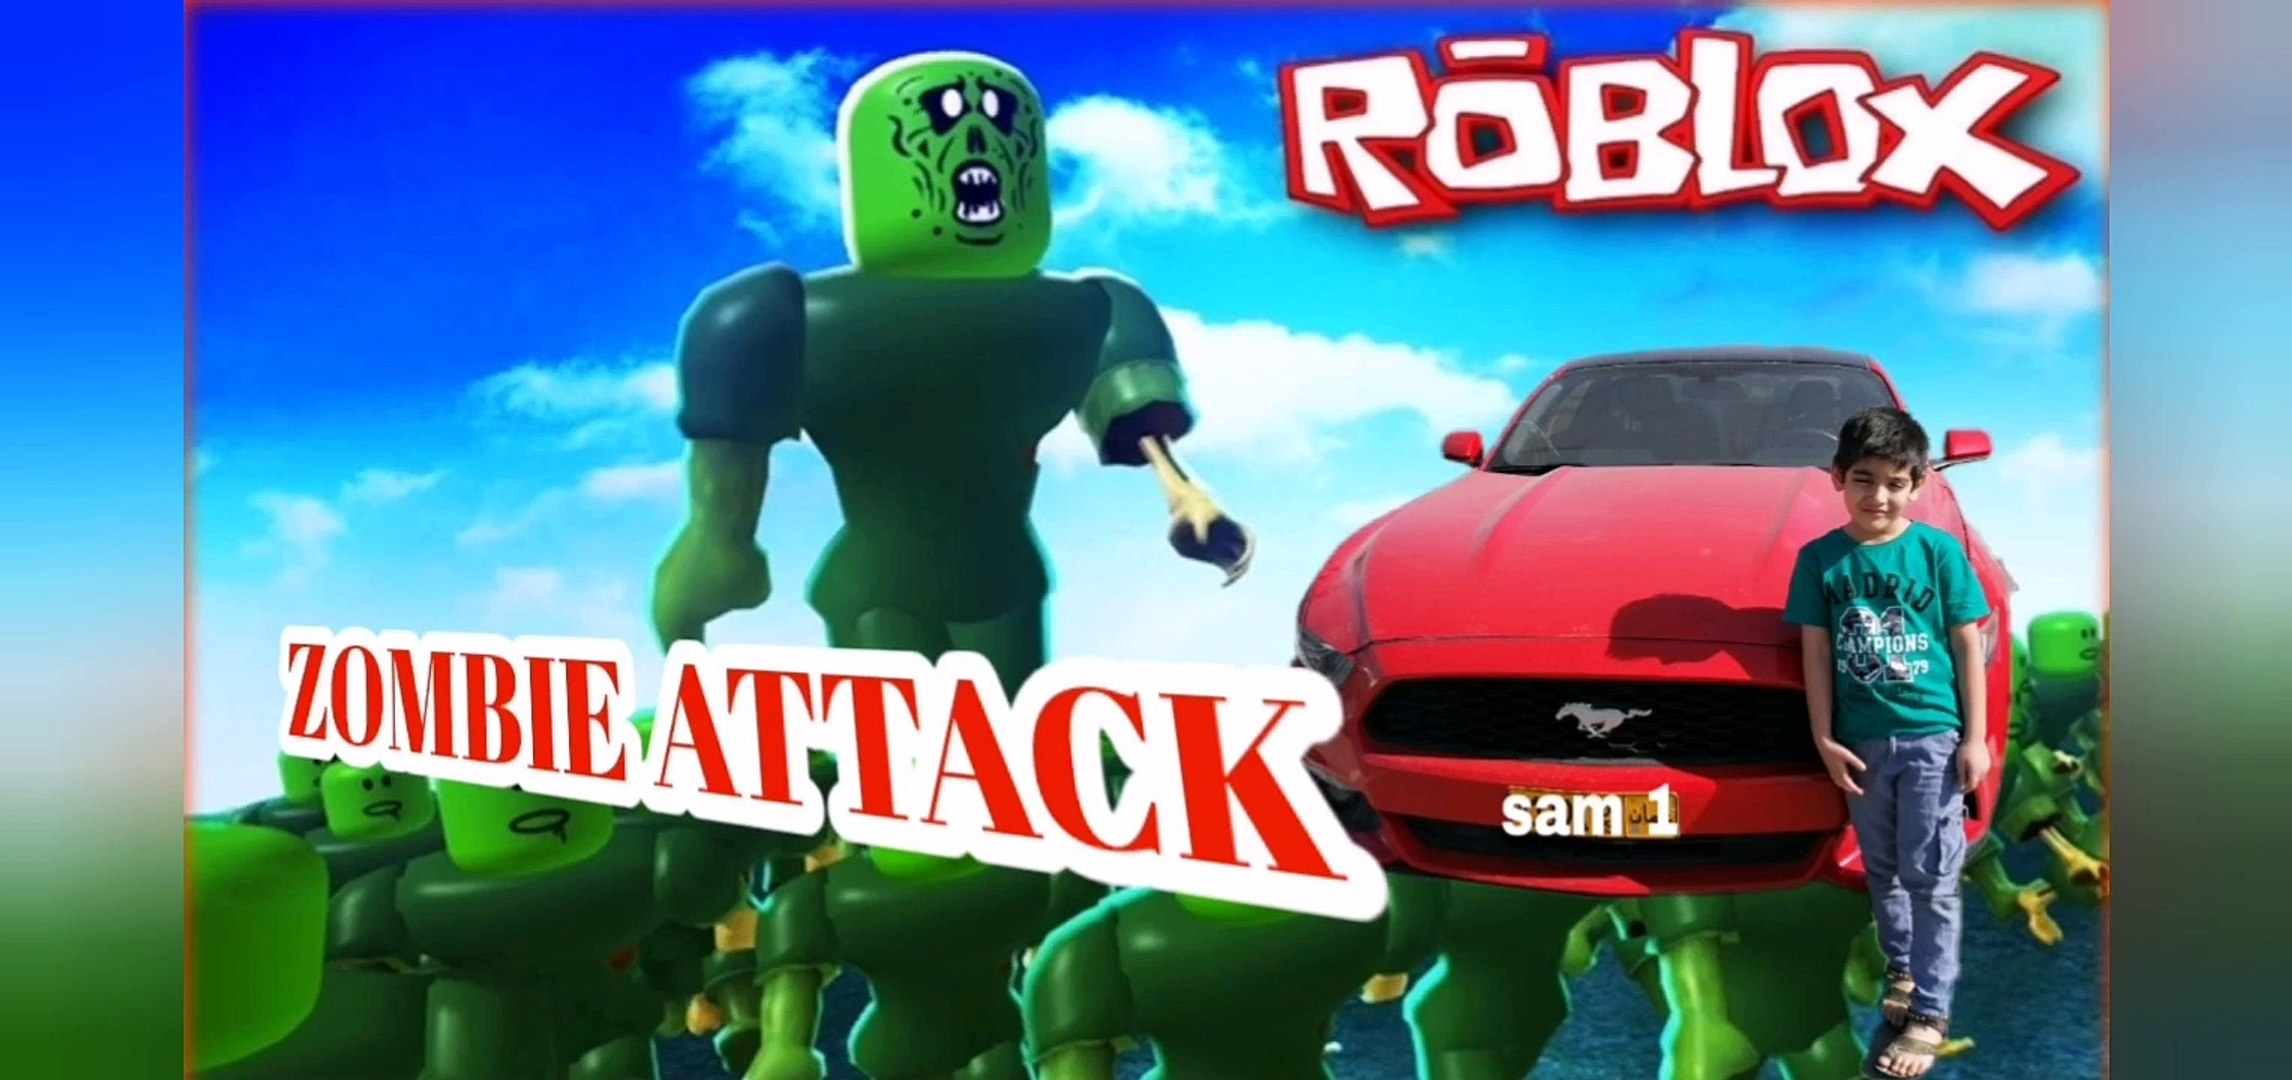 Roblox Zombie Attack Fr Zombie Attack 2 And Gun Fire Every Where In Roblox By Sam Sobsamgames Video Dailymotion